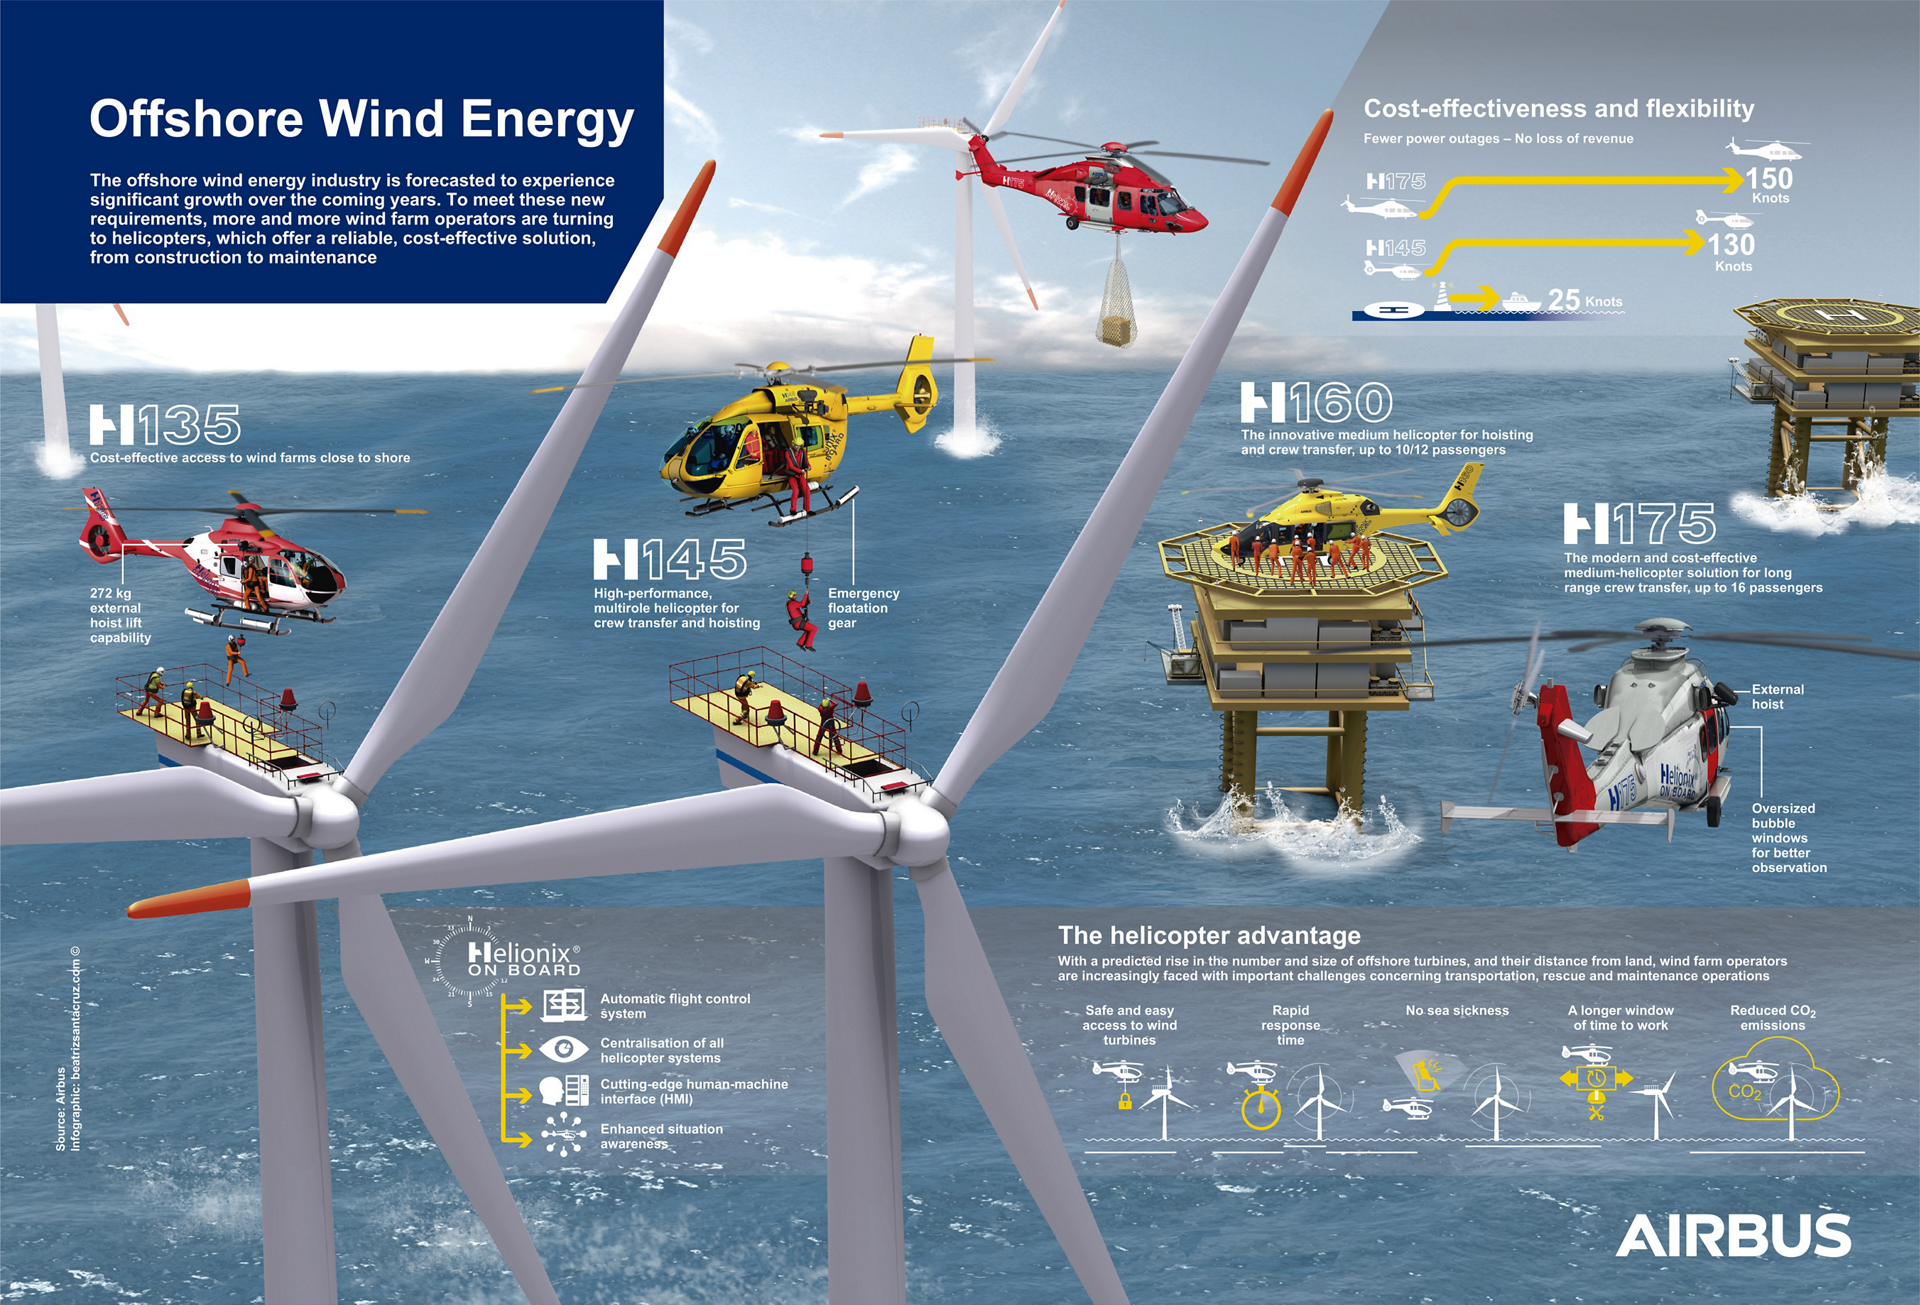 An infographic highlighting Airbus' rotary-wing solutions for the offshore wind energy sector, including the H135, H145, H160 and H175.